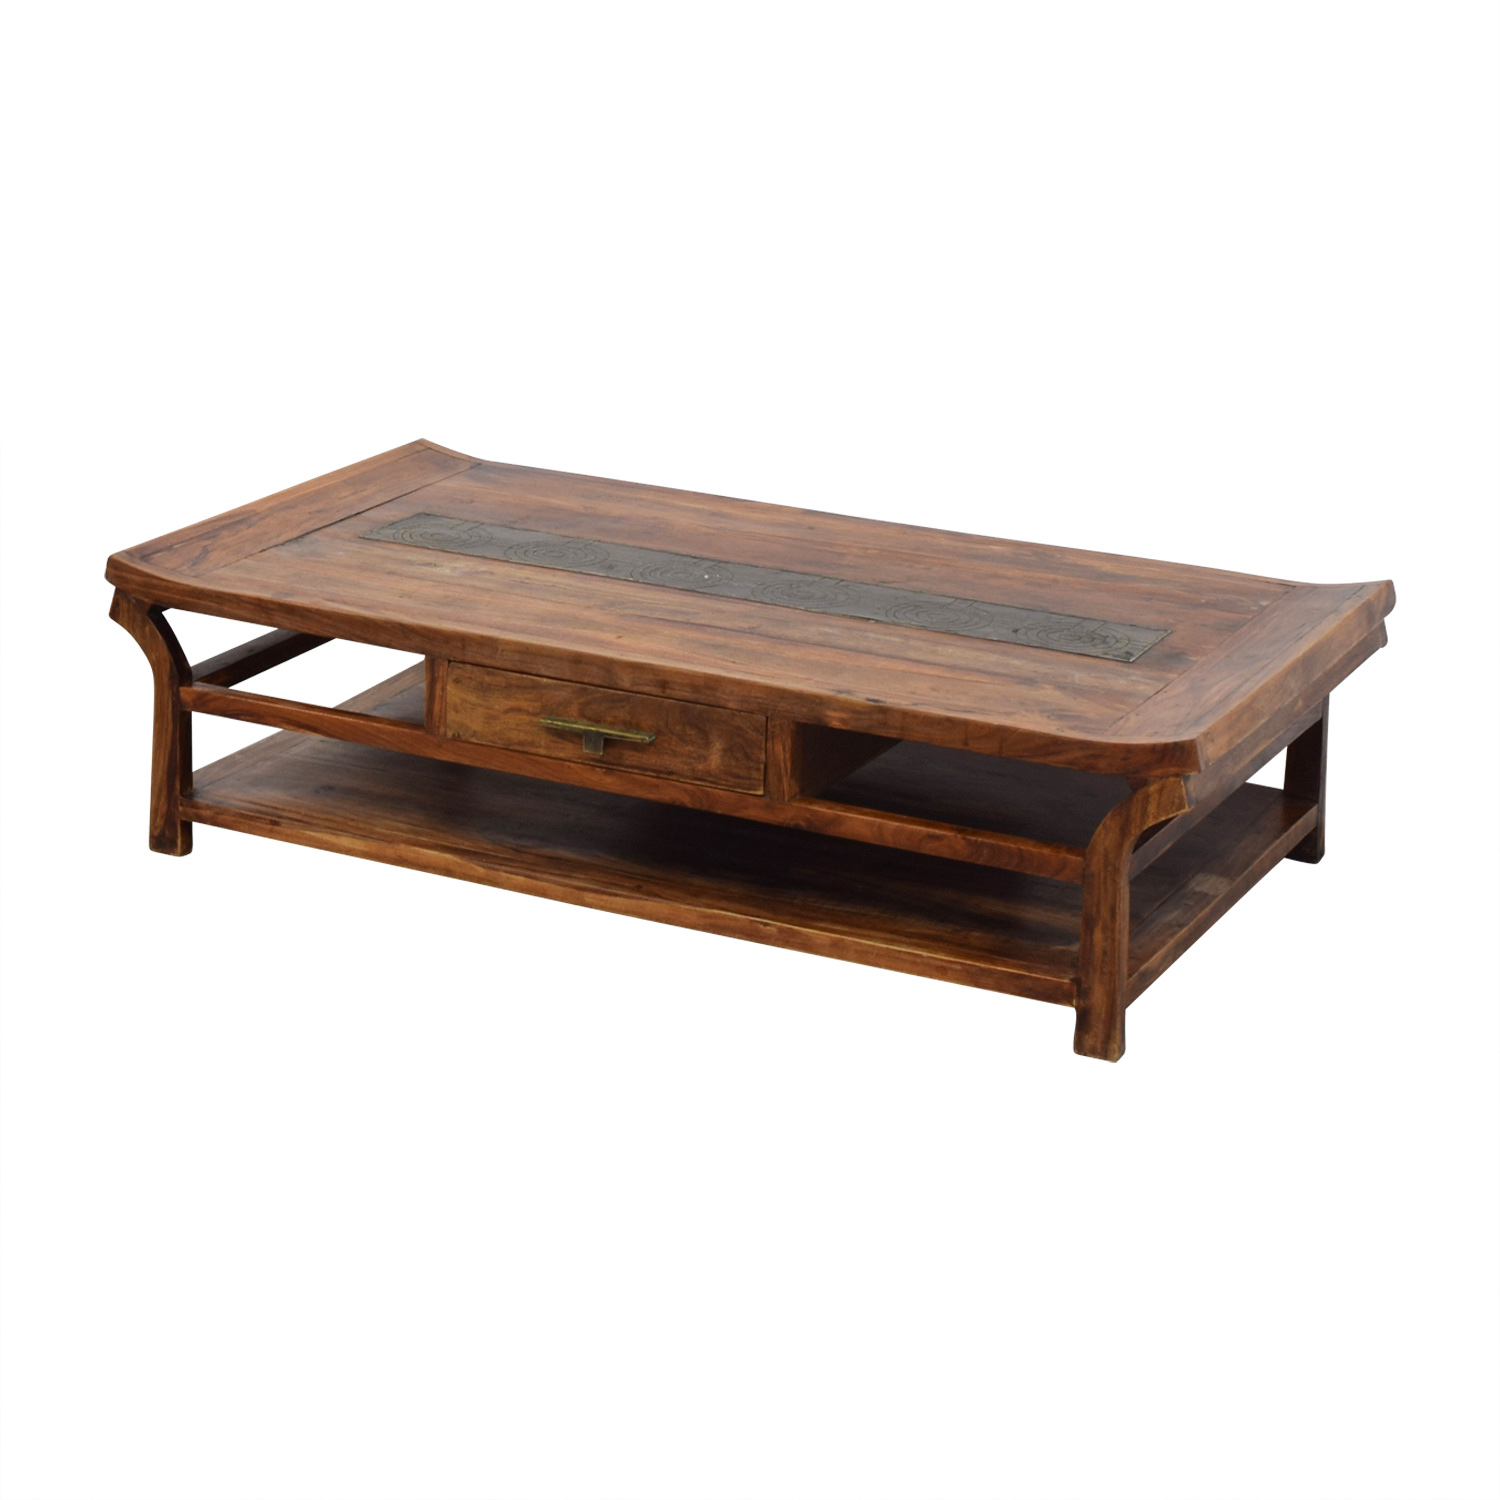 off  black laquer coffee table  tables - natural wood coffee table unknown brand